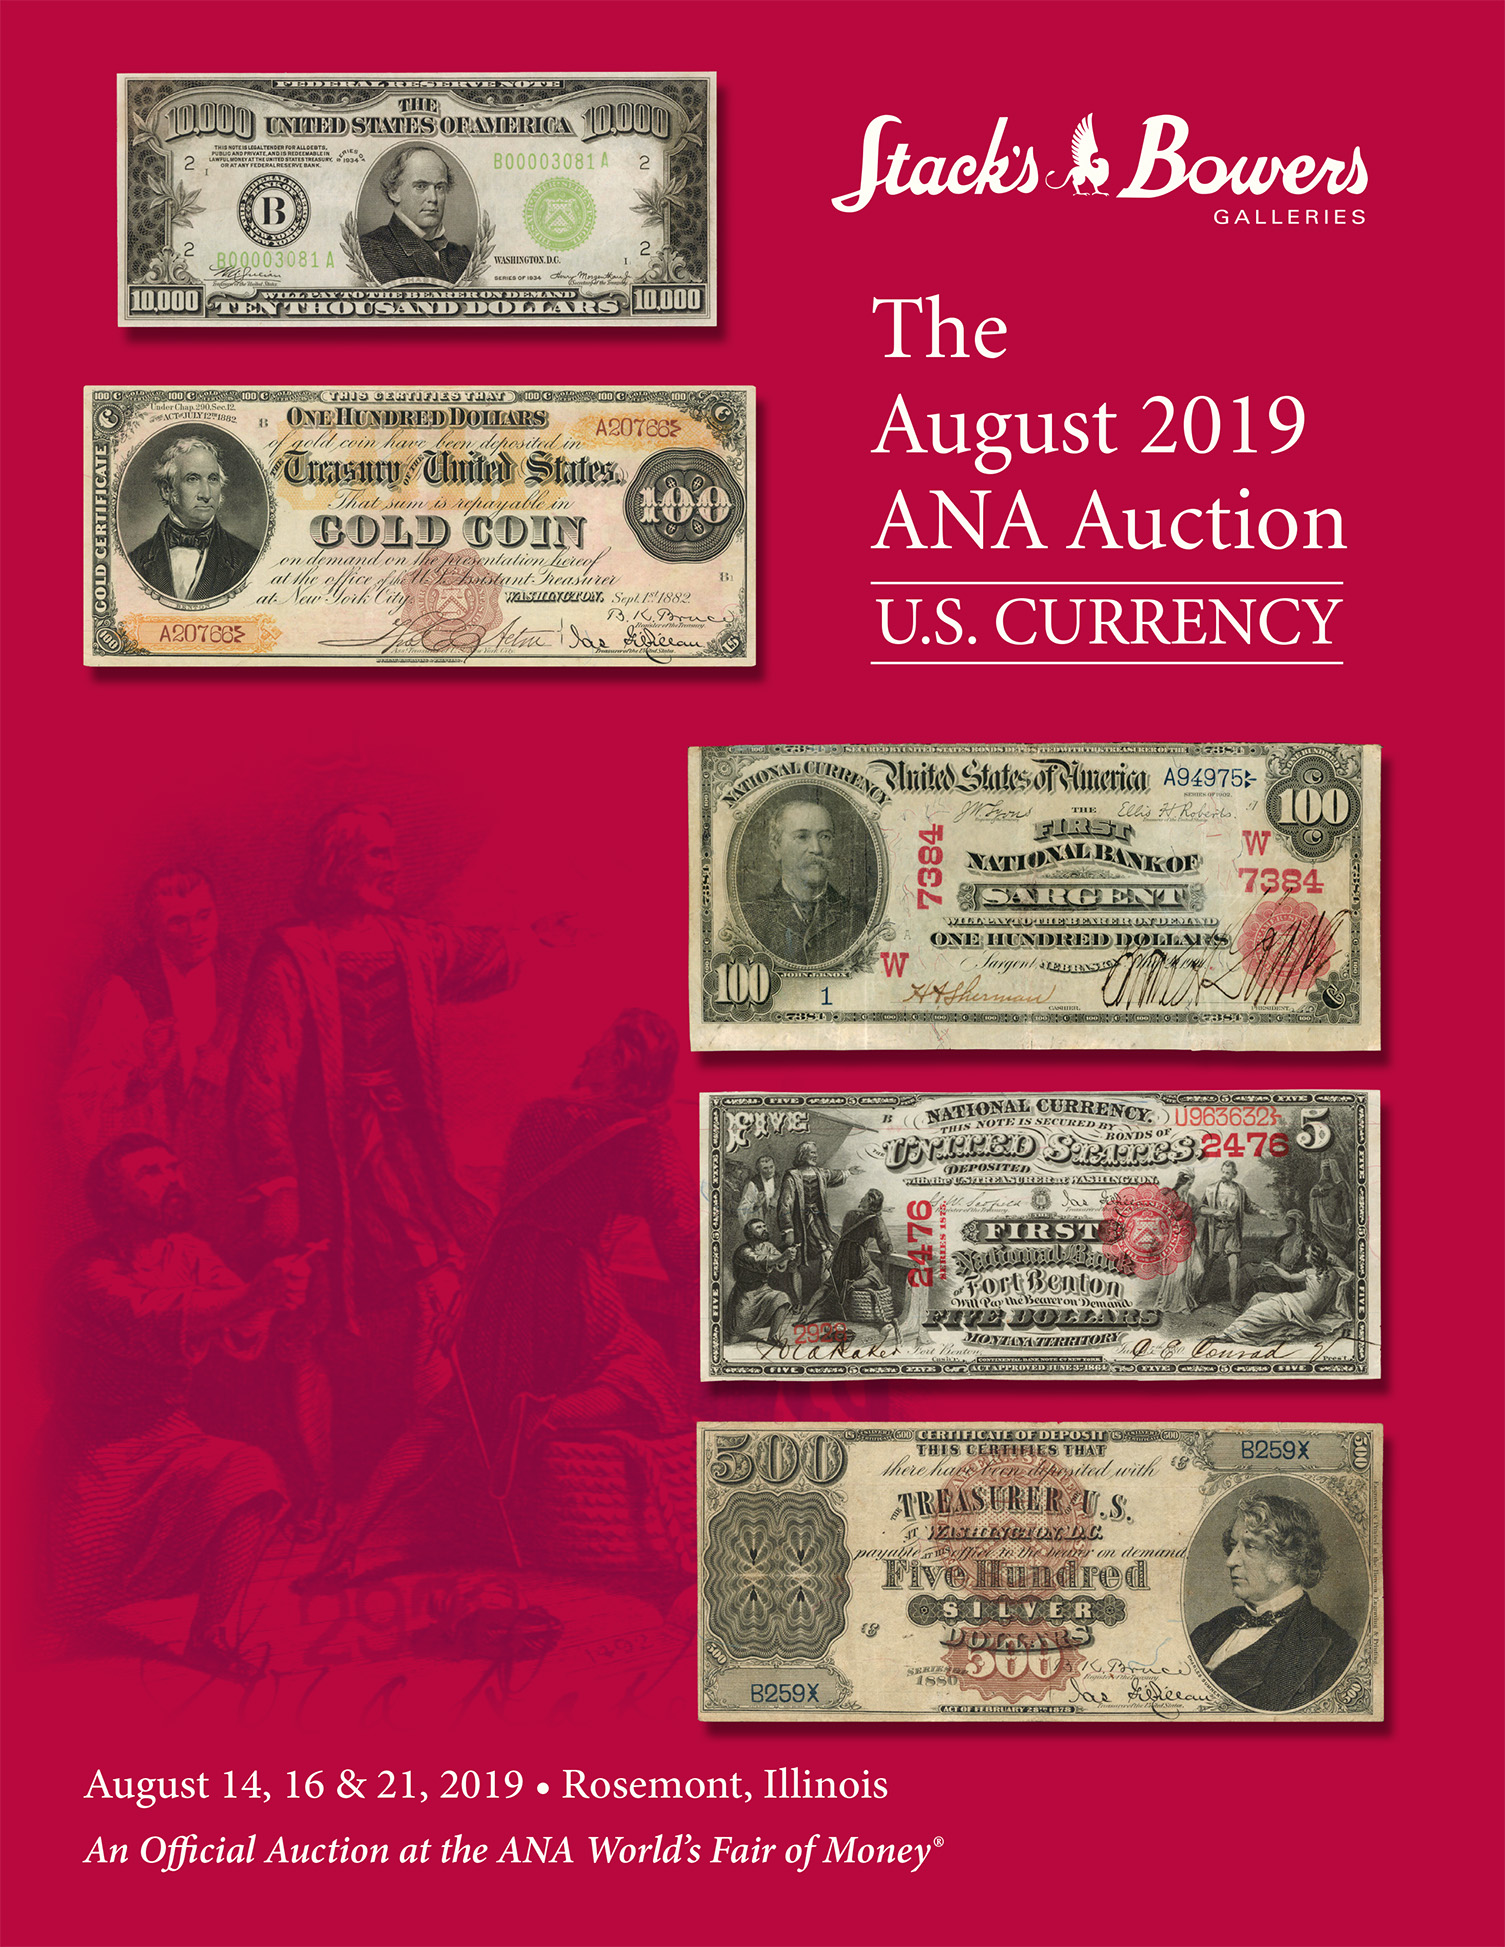 The August 2019 ANA U.S. Currency Auction